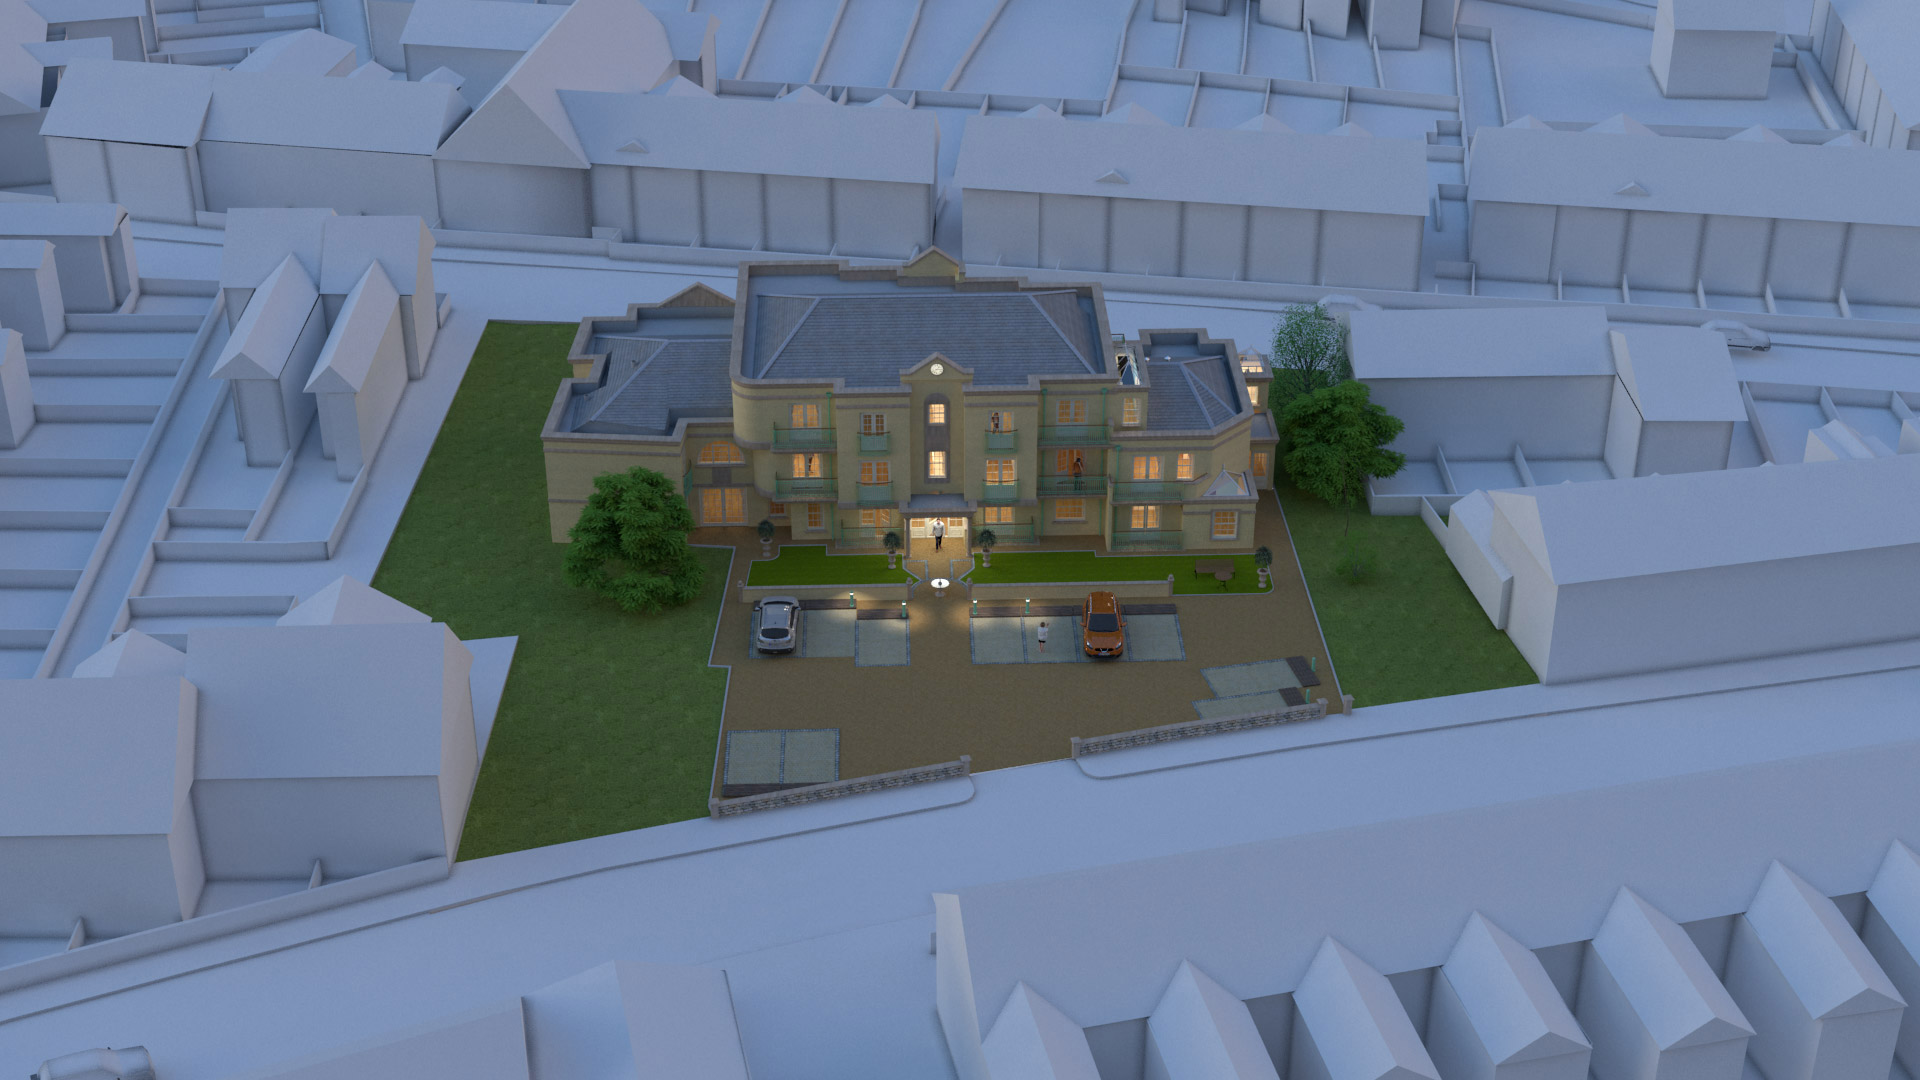 CGI aerial image of an apartment building for marketing